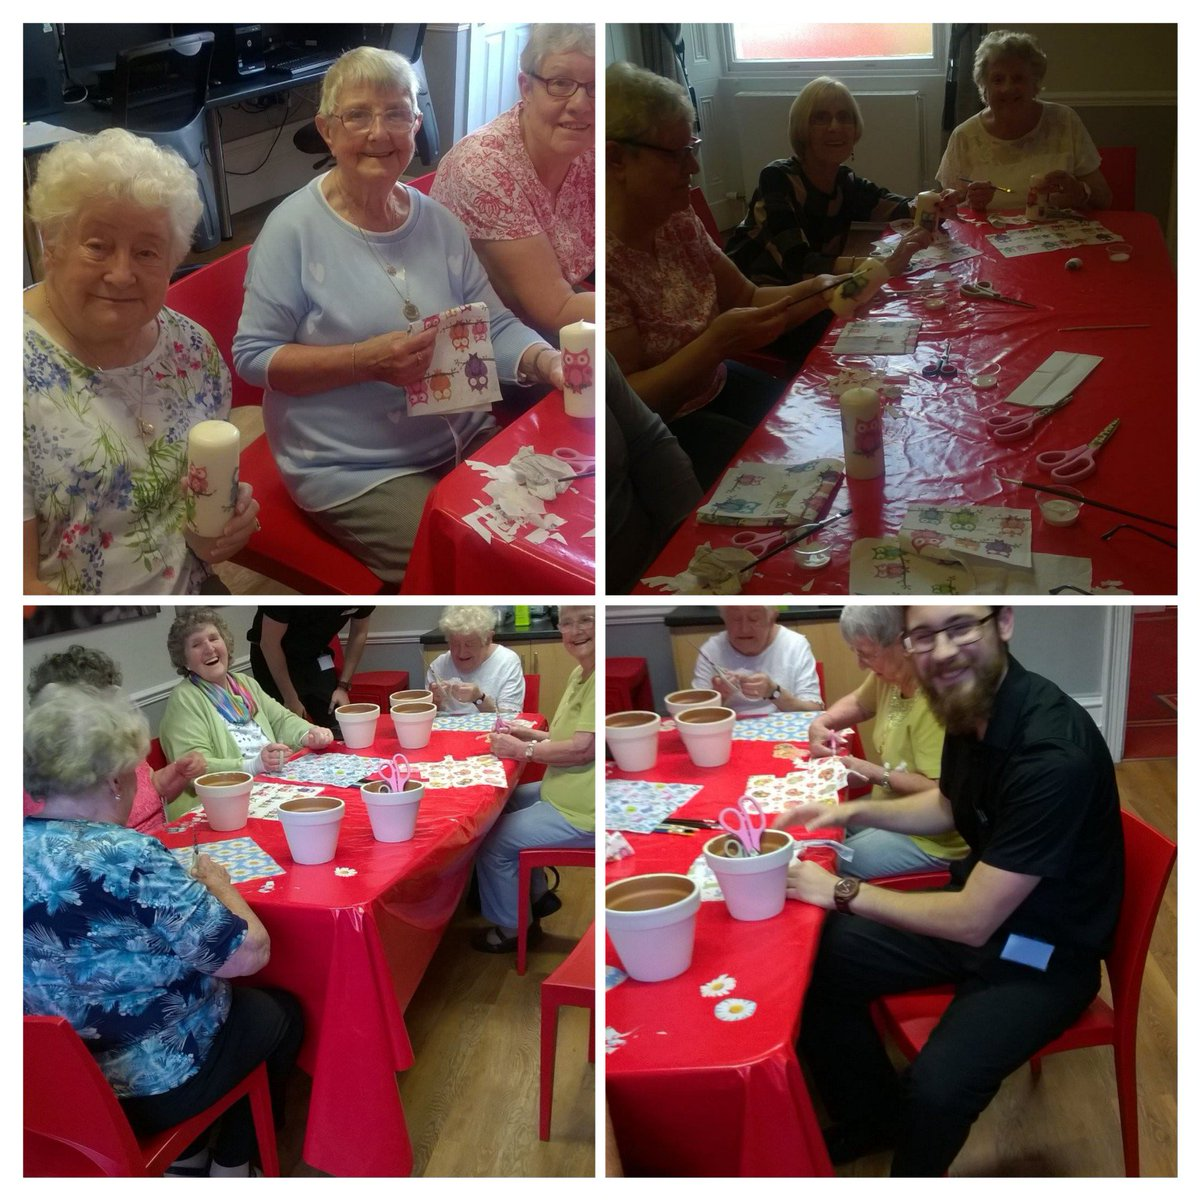 Craft classes at Byng House #crafternoon #crafting #craftclass #bynghouse #rbl #southport #poppybreak #charitytuesday<br>http://pic.twitter.com/p0kBg2qeS5